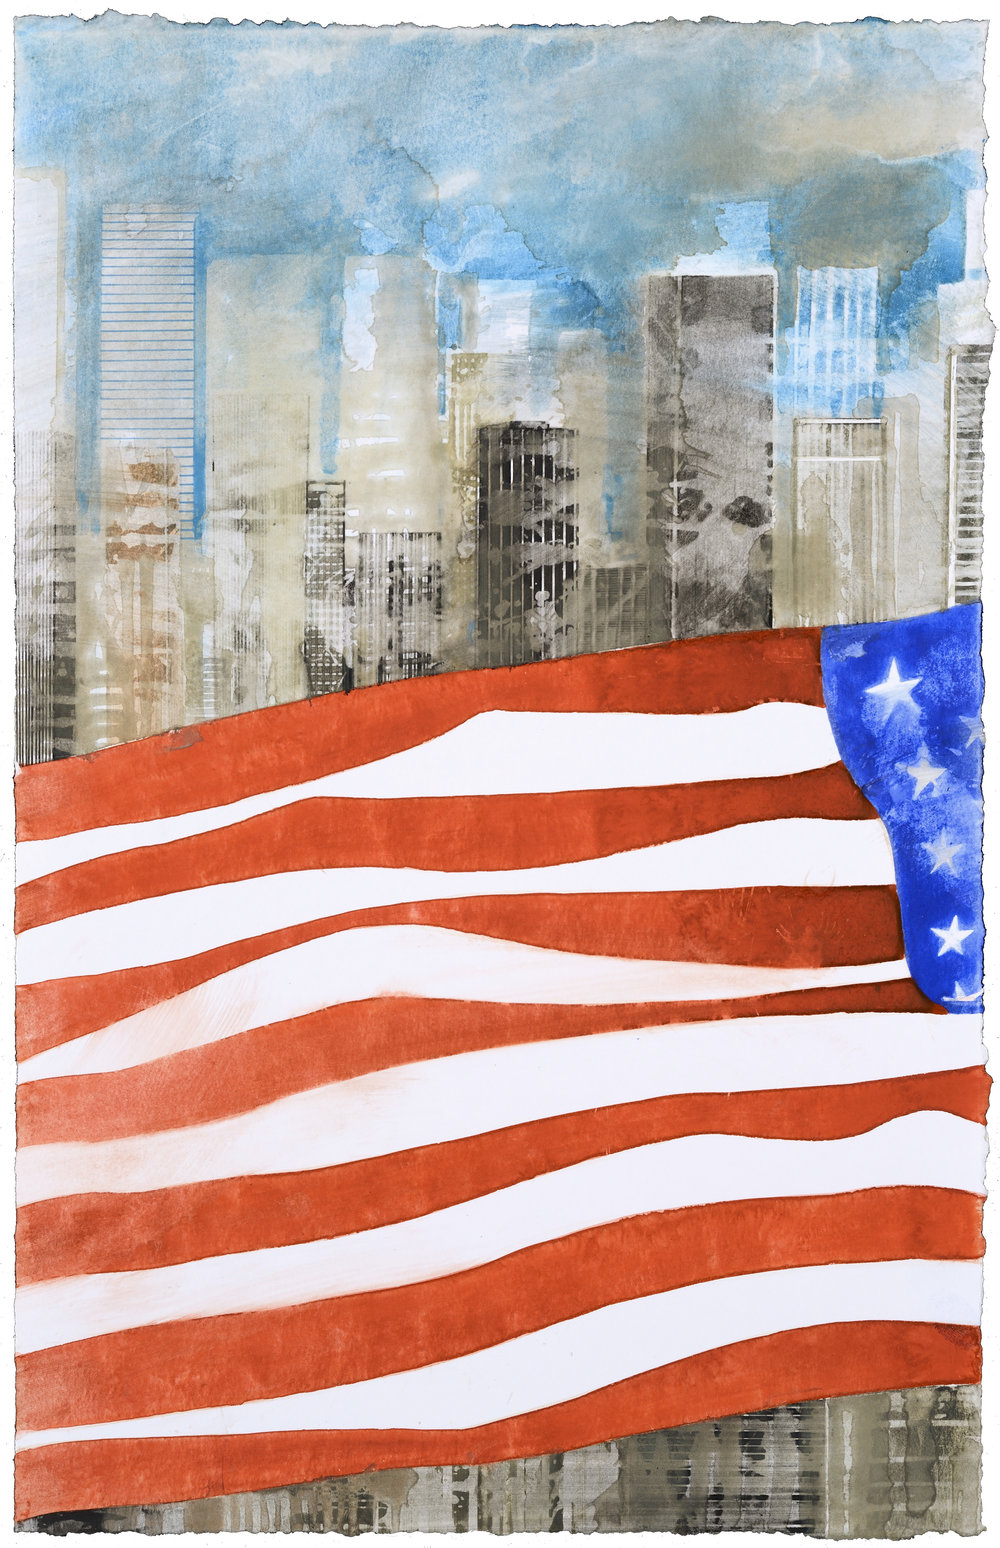 US Flag VI, watercolor, 48 x 30 cm, 19 x 12 in, 2015